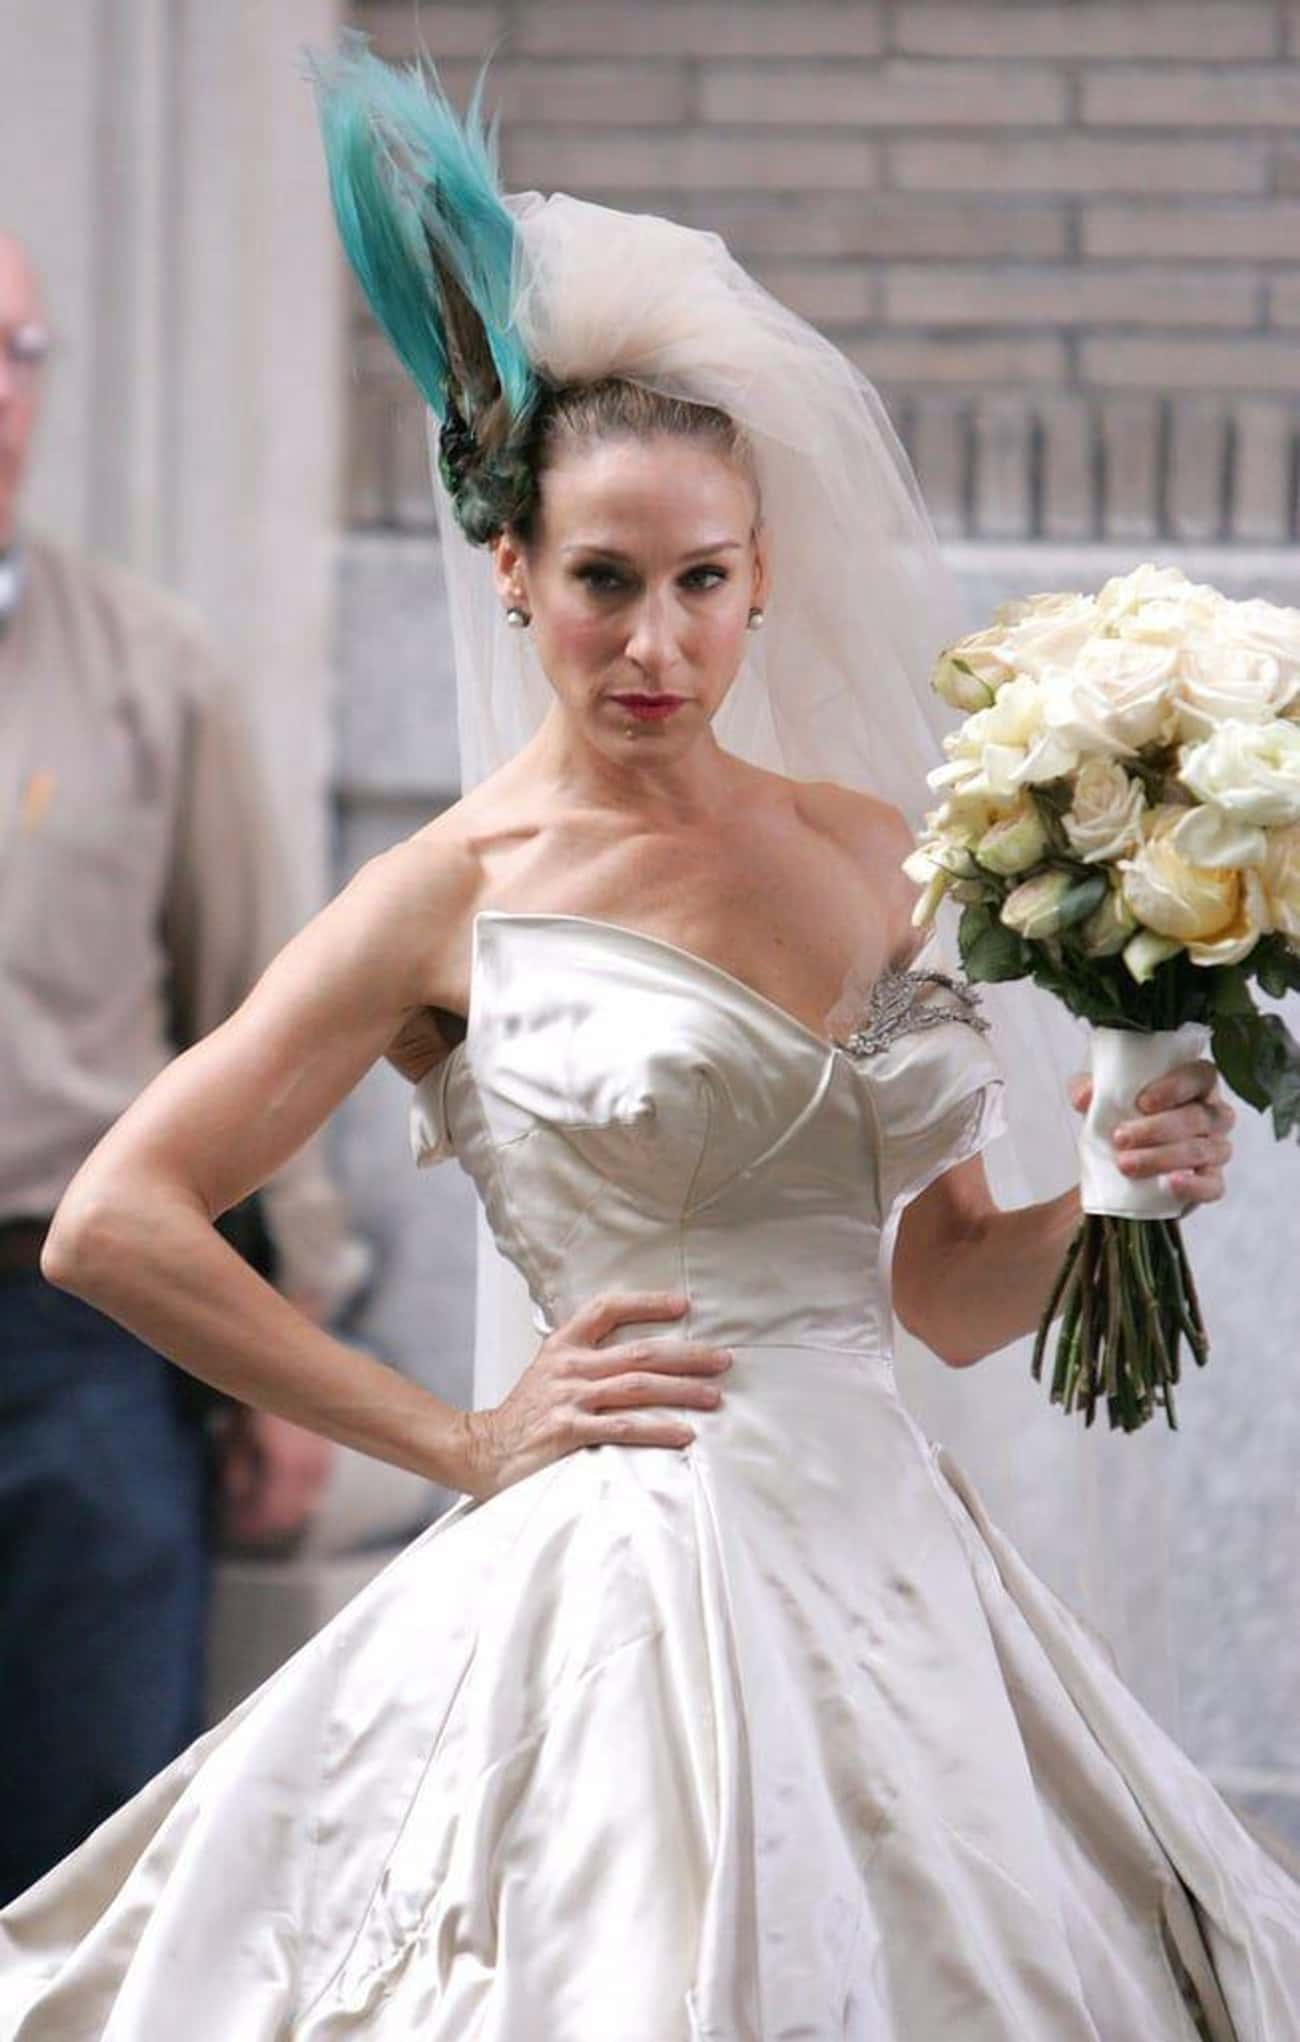 Carrie Bradshaw's Dress In 'Se is listed (or ranked) 4 on the list The Worst Wedding Dresses In Romantic Comedy History